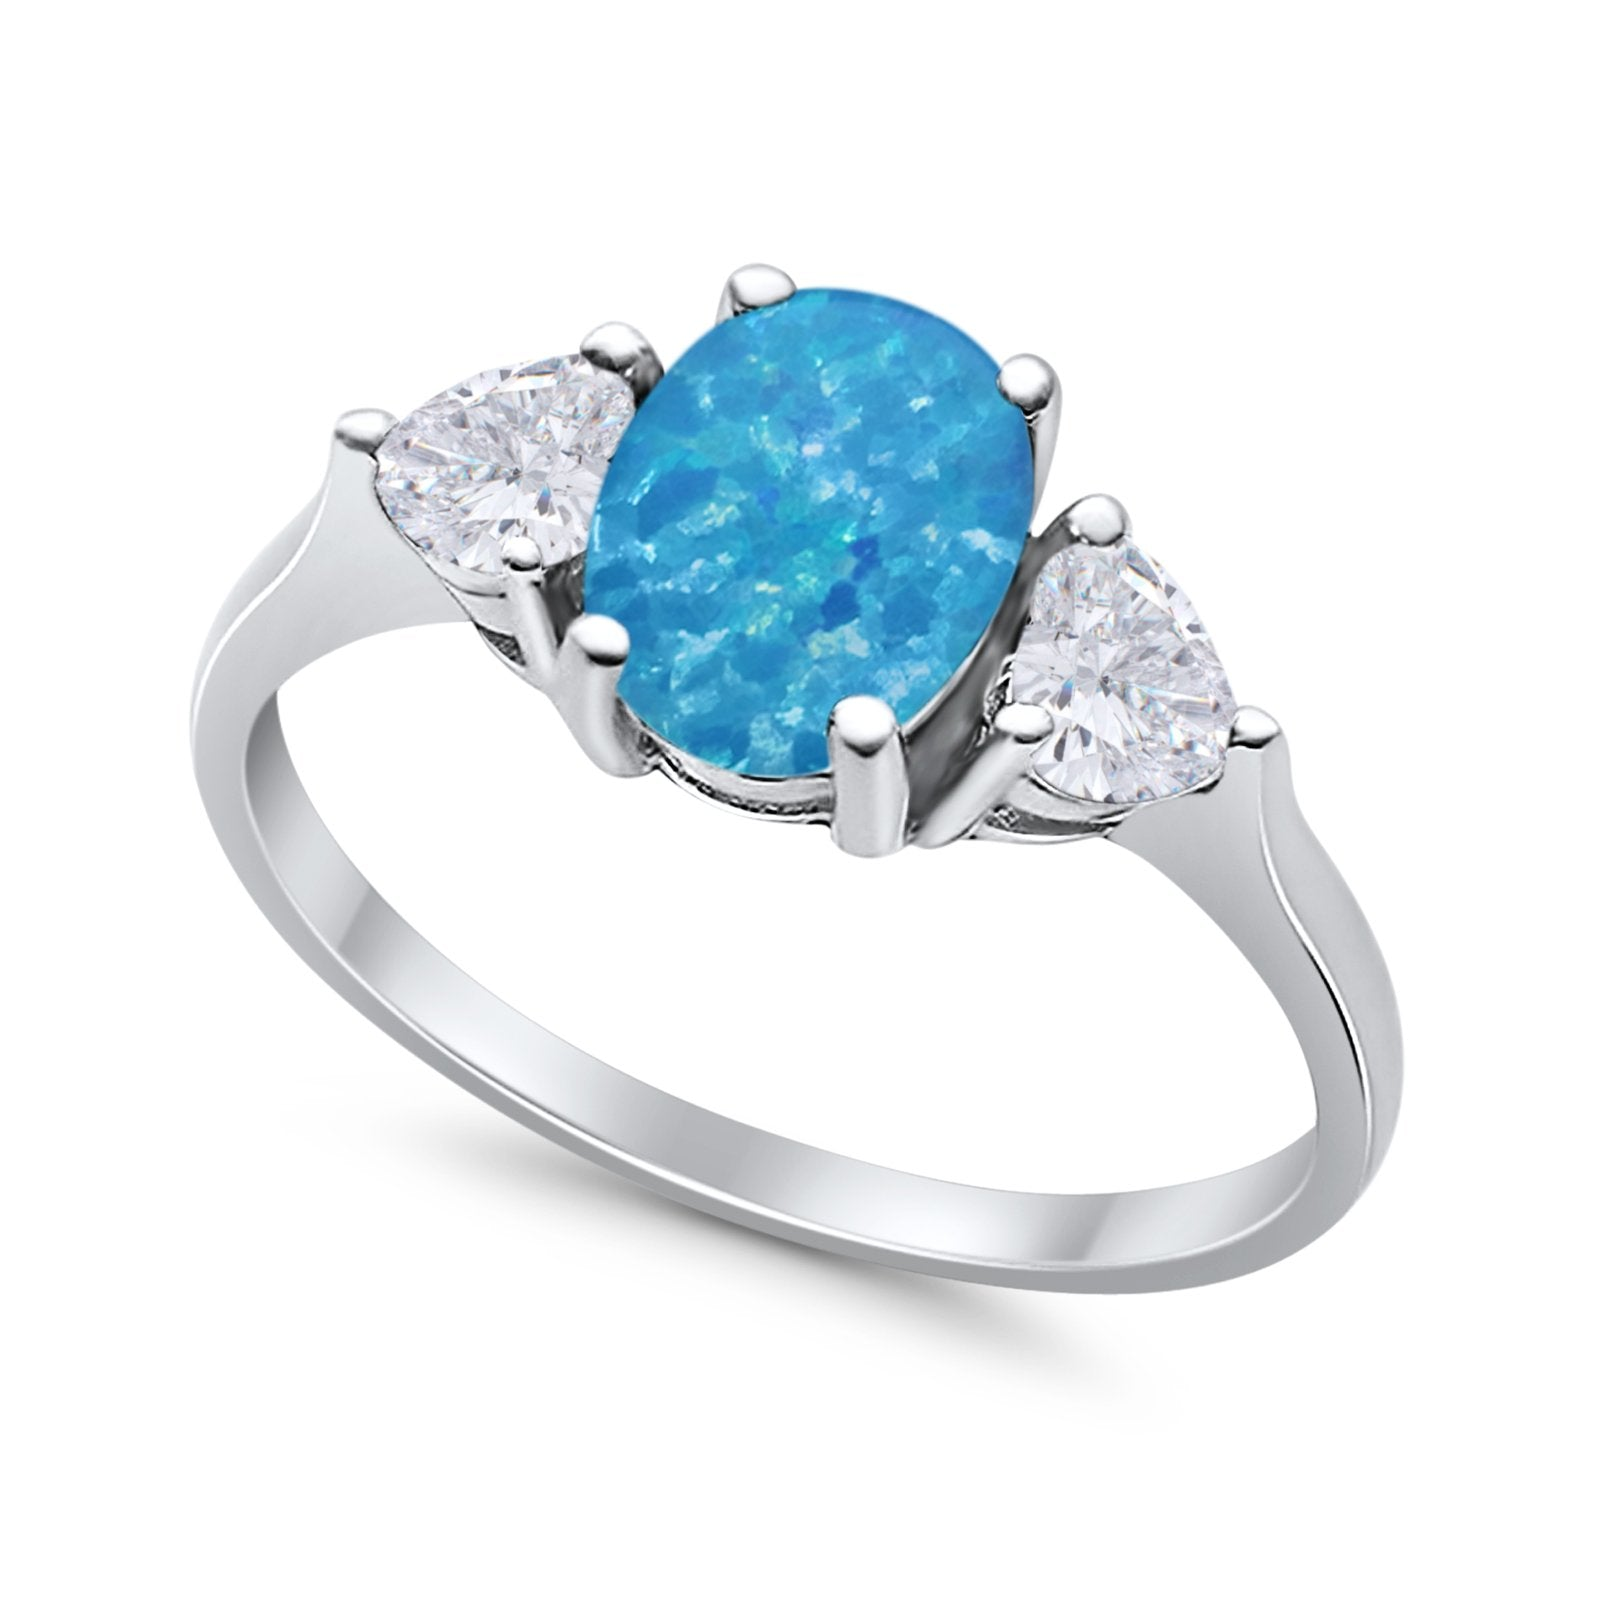 Fashion Promise Lab Created Blue Opal Ring 925 Sterling Silver